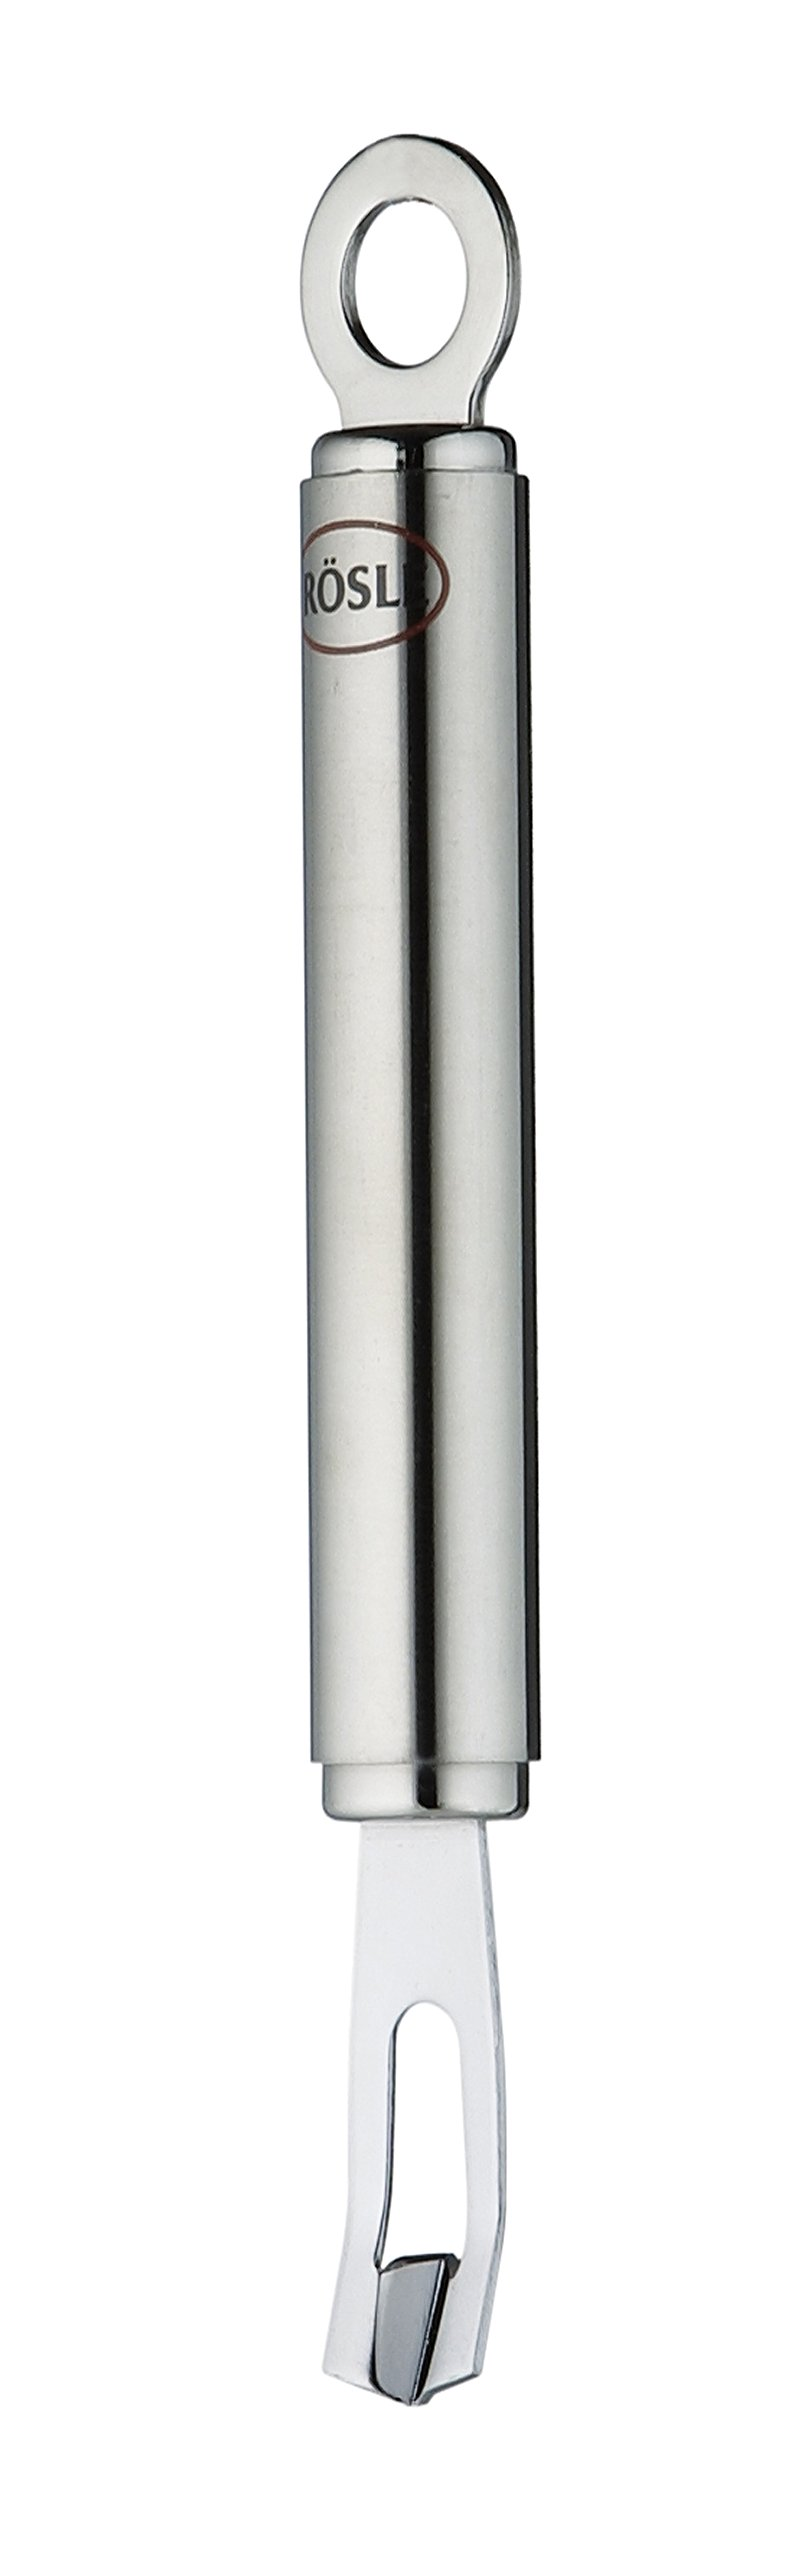 Rösle Stainless Steel Round-Handle Vertical Canelle